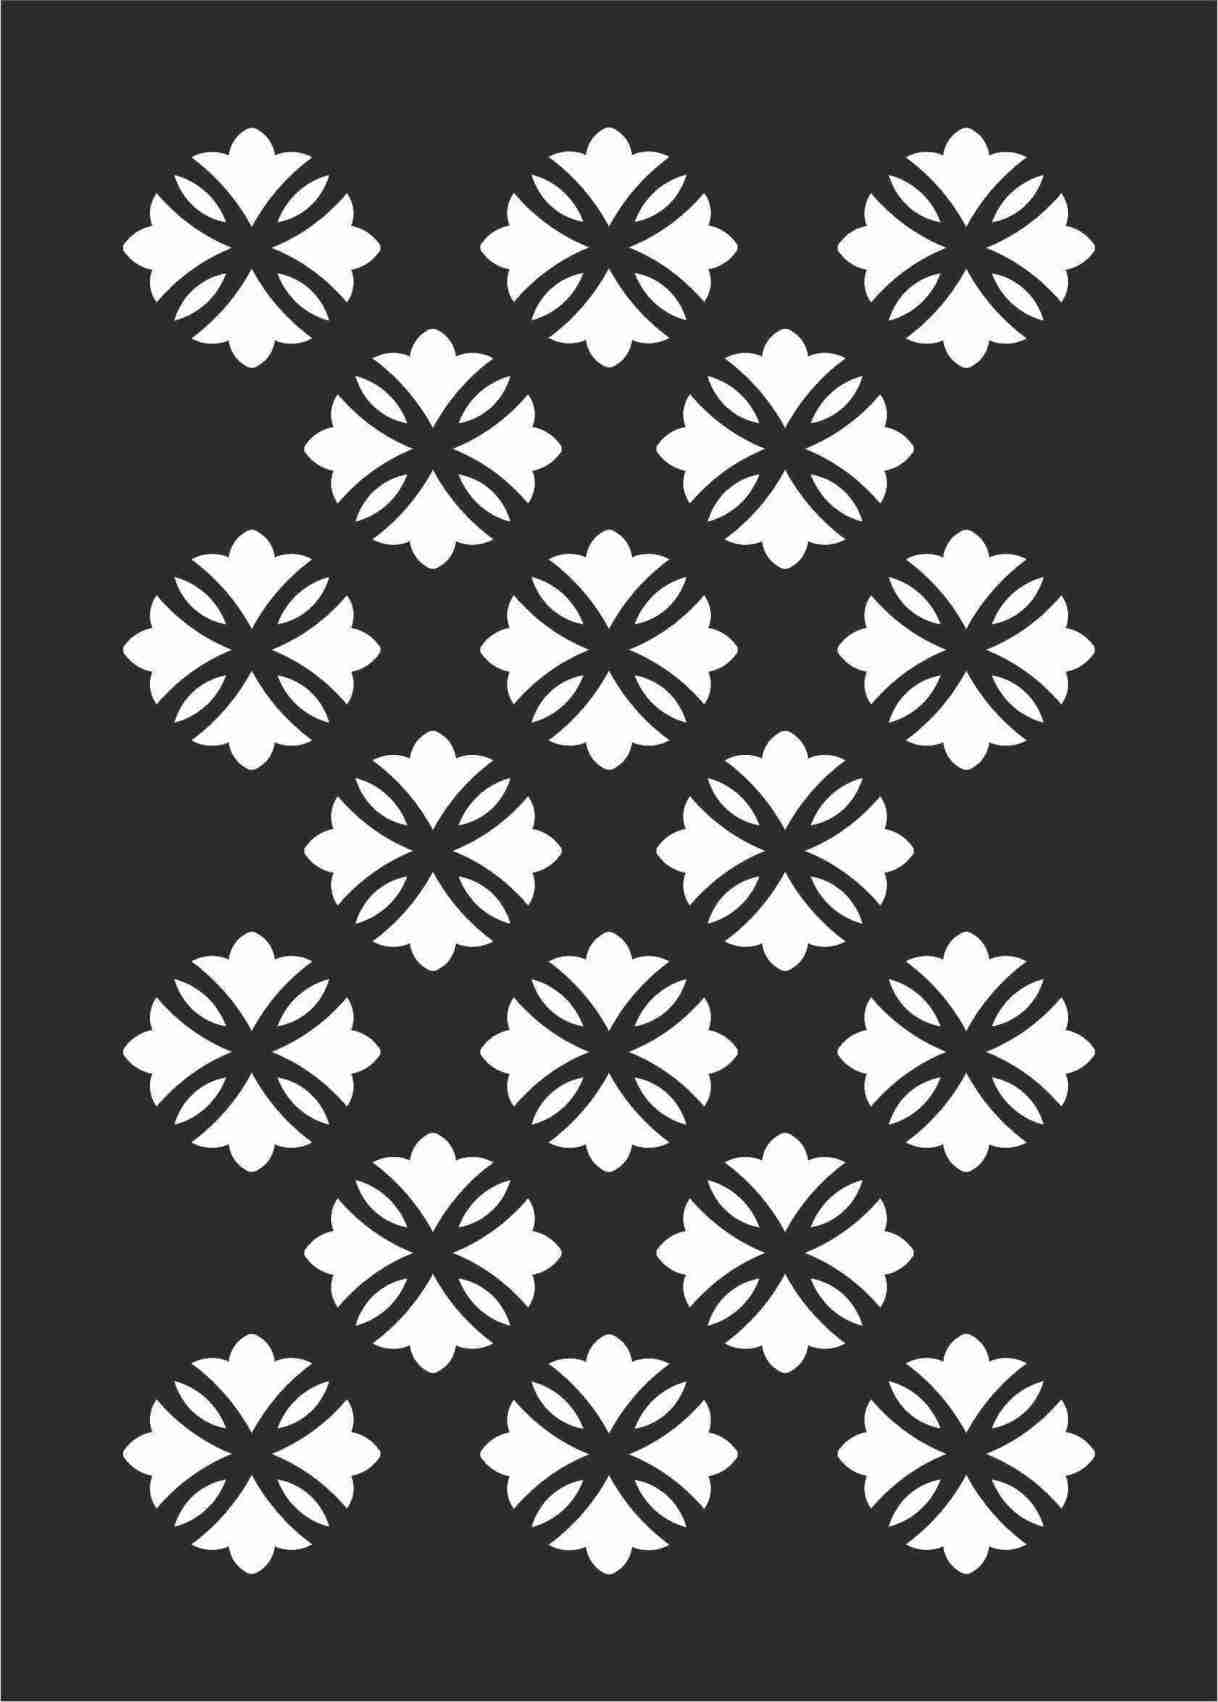 Decorative Screen Patterns For Laser Cutting 106 Free DXF File